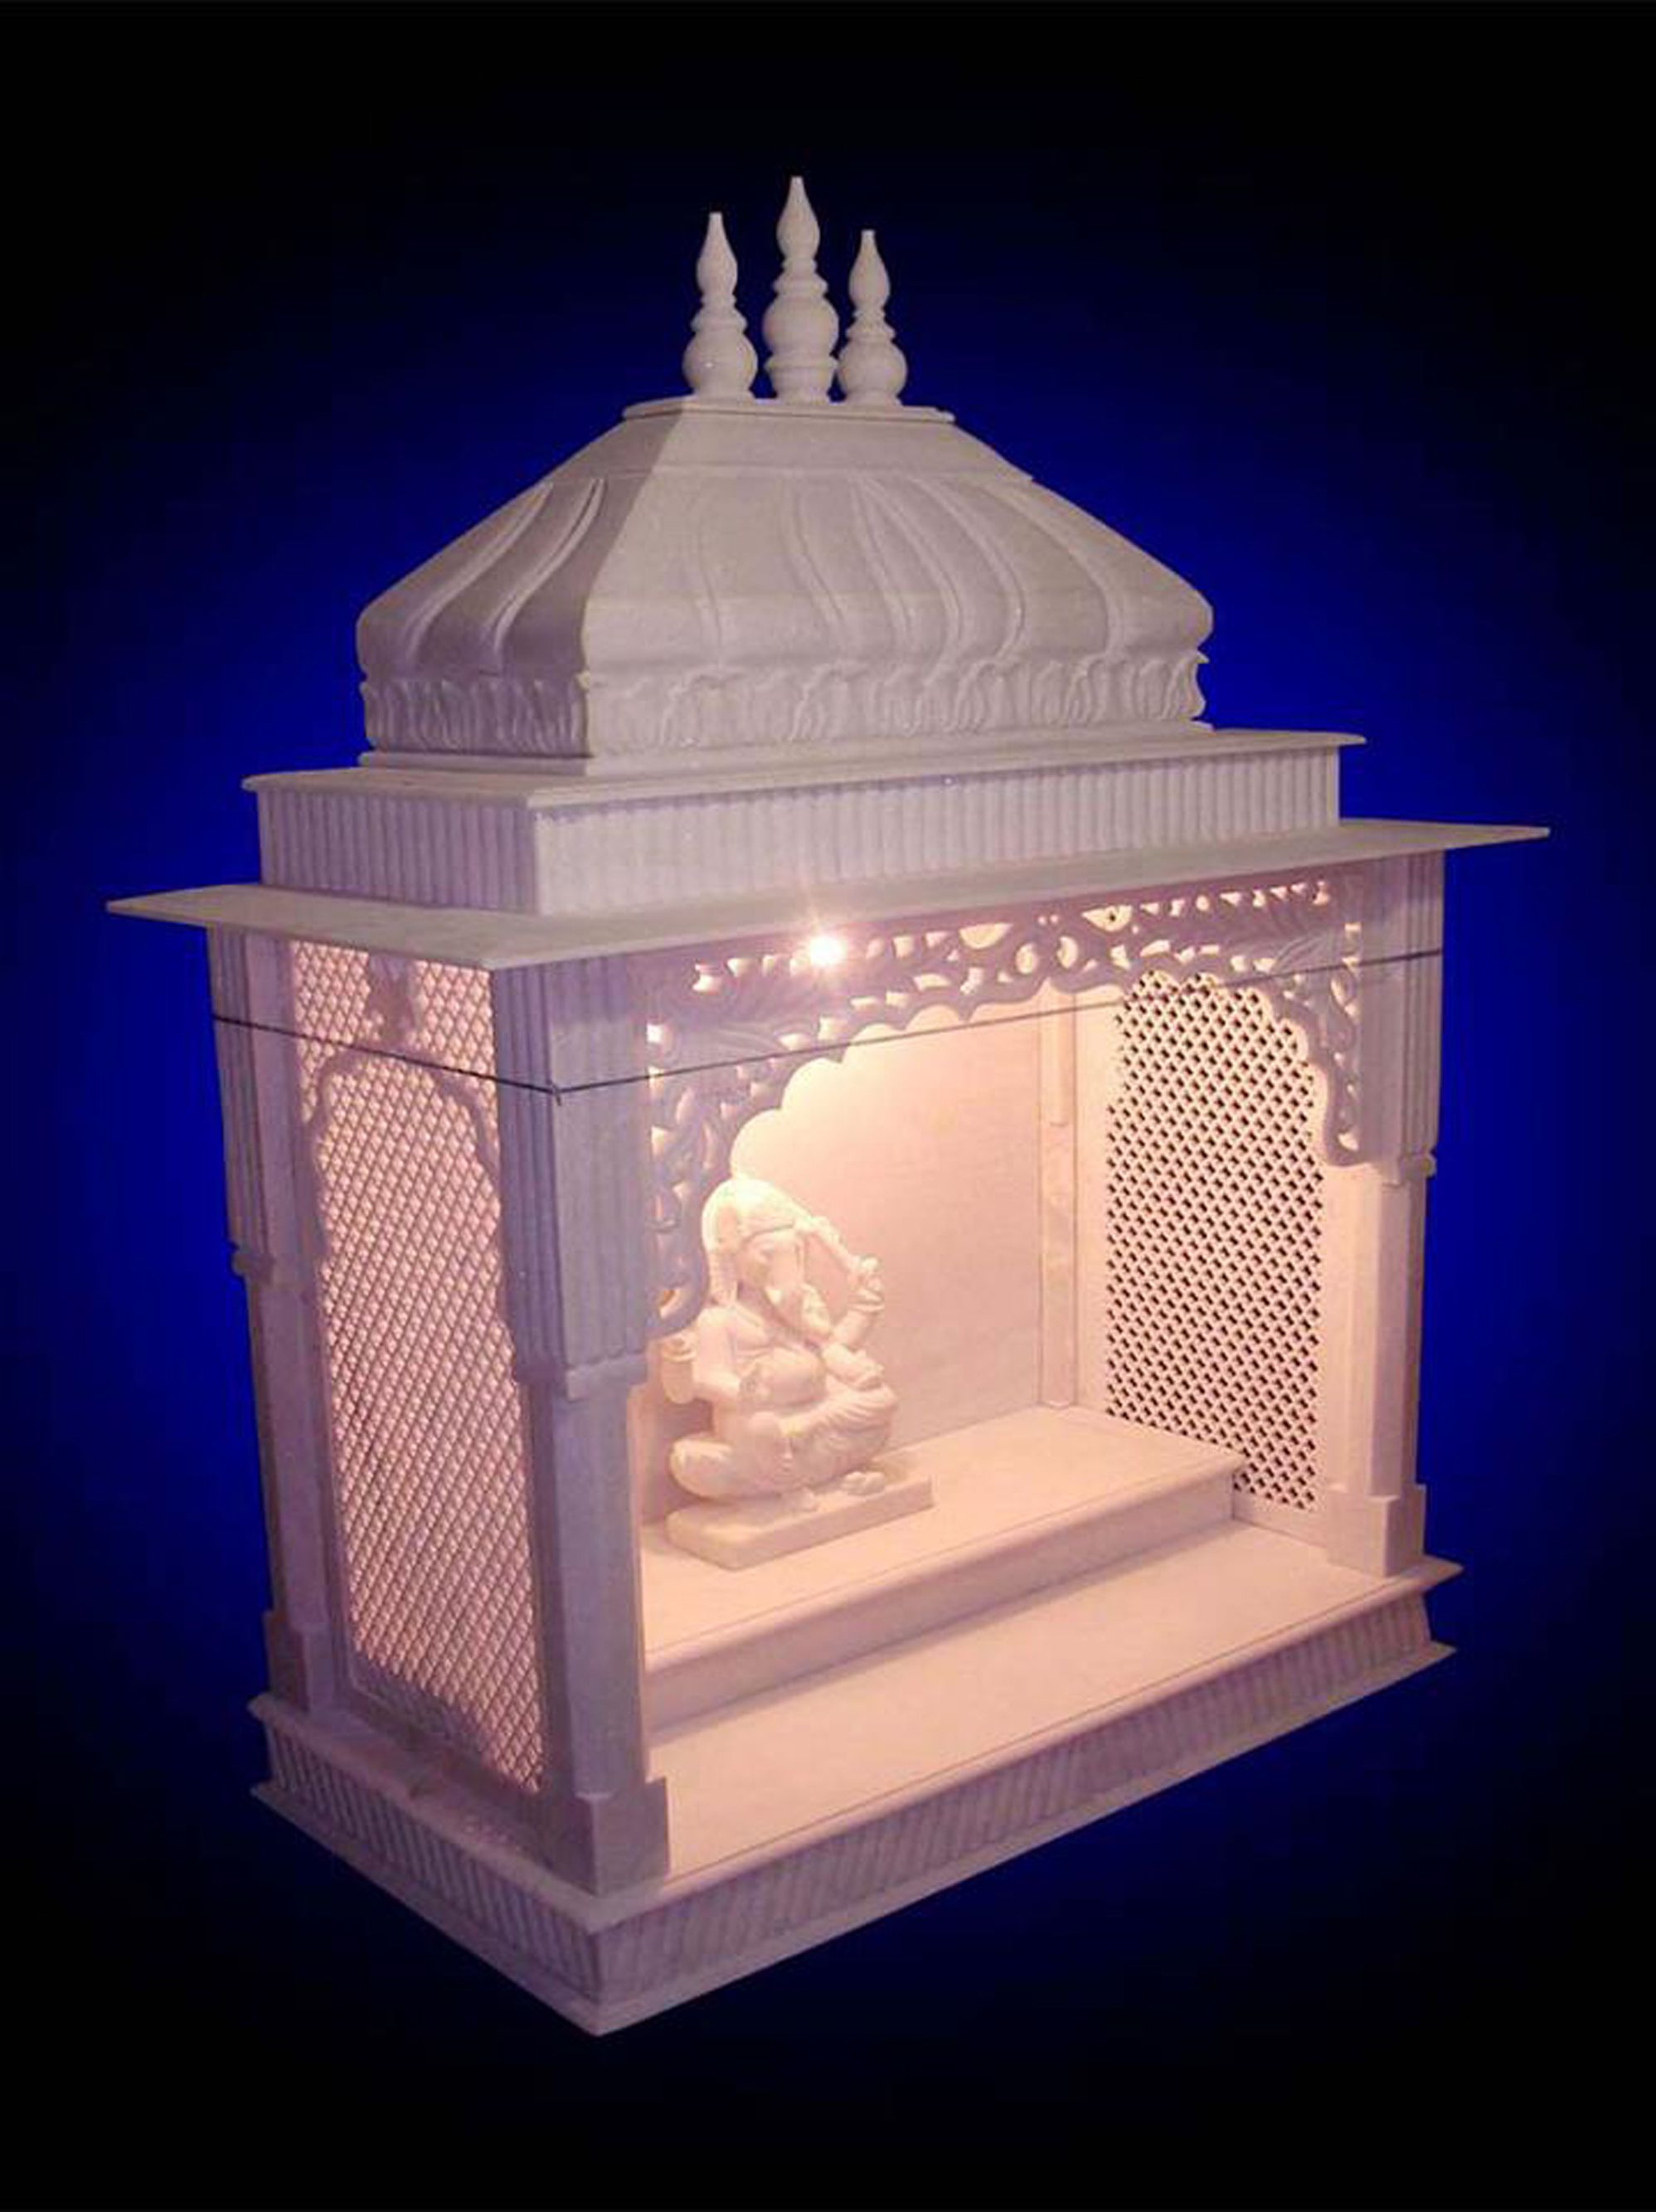 Wooden temple designs for home small temple for home wooden home - Puja Room Design Home Mandir Lamps Doors Vastu Idols Placement